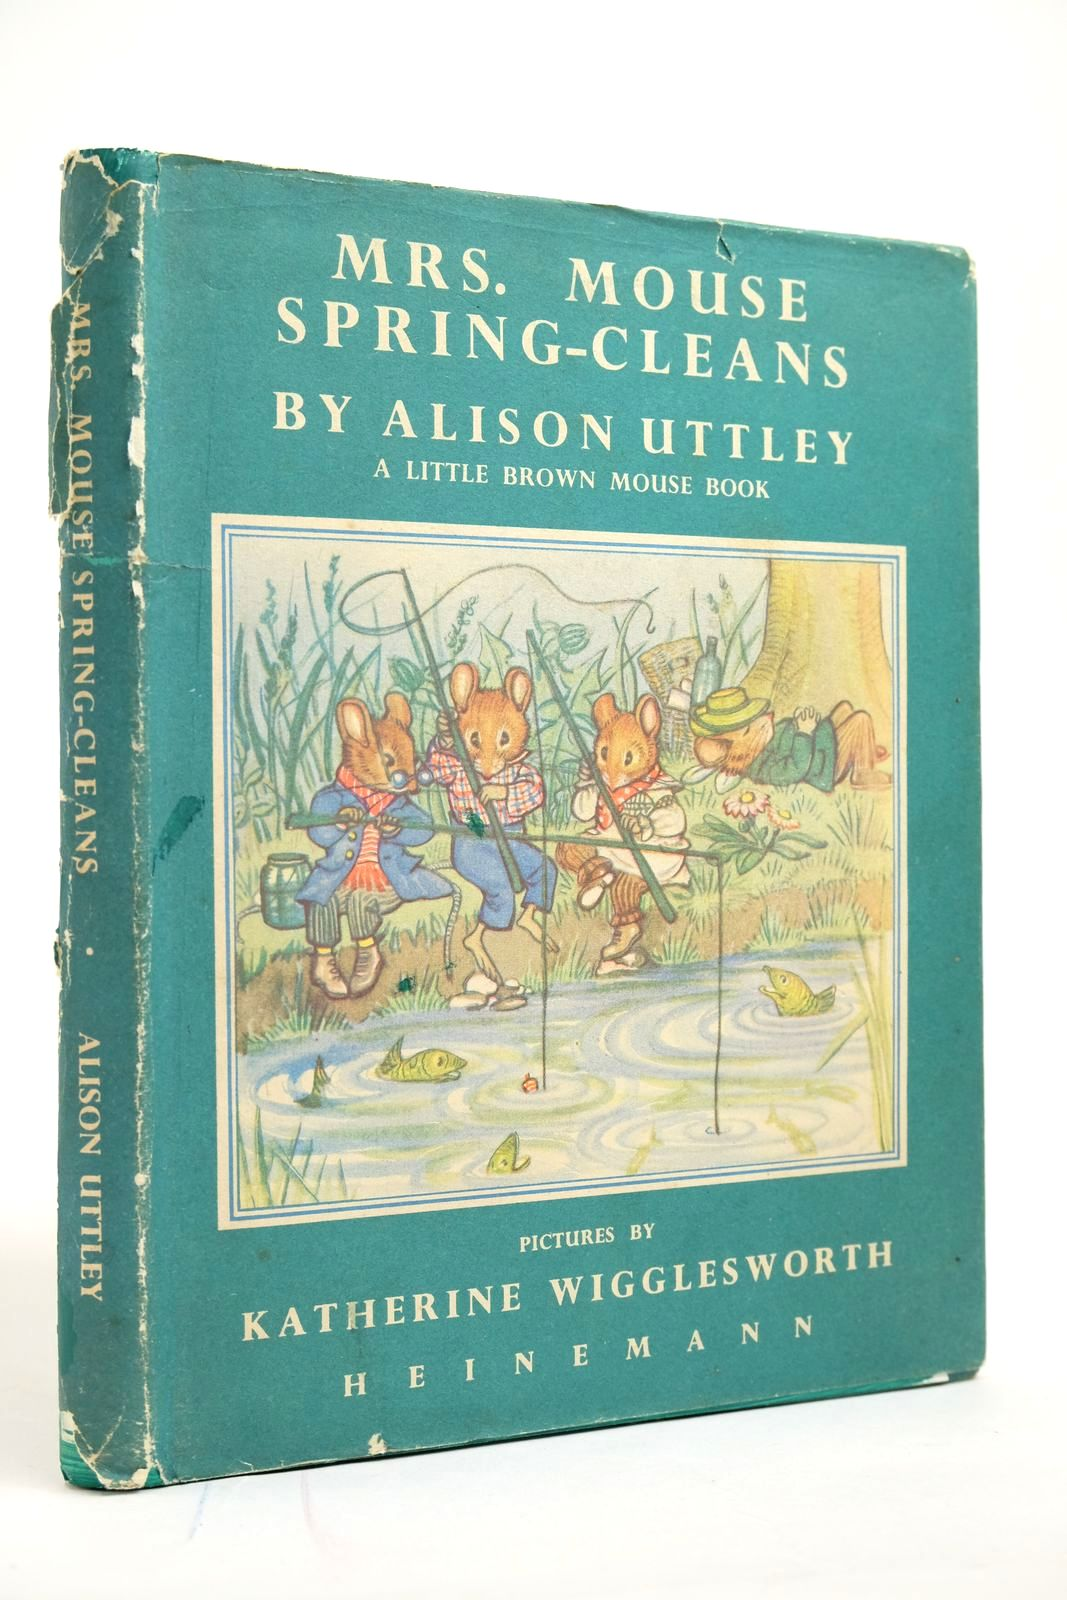 Photo of MRS. MOUSE SPRING-CLEANS written by Uttley, Alison illustrated by Wigglesworth, Katherine published by William Heinemann Ltd. (STOCK CODE: 2135096)  for sale by Stella & Rose's Books